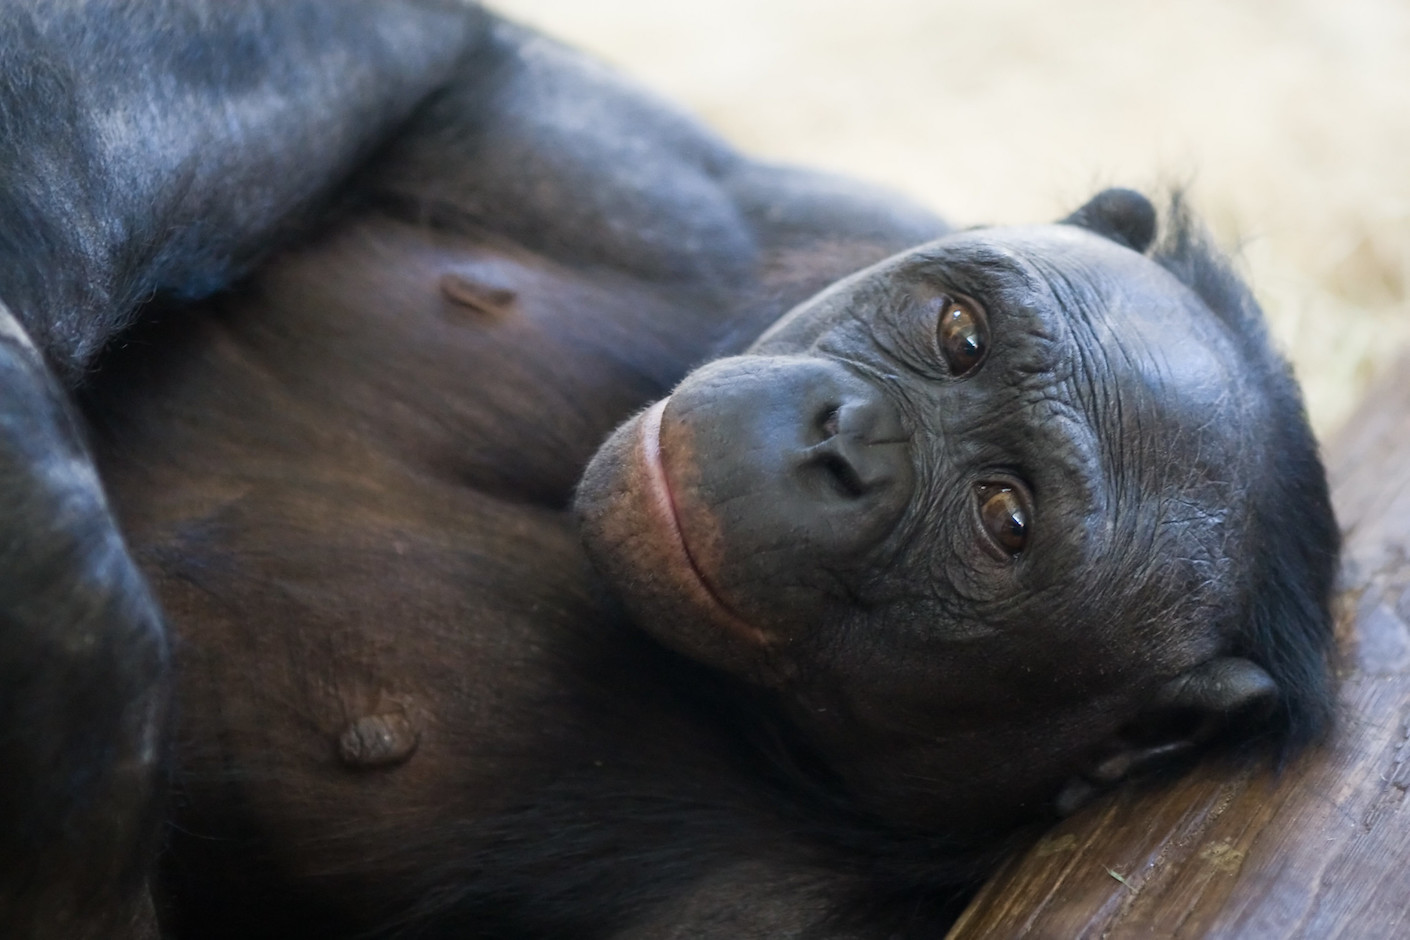 Images from a dropped phone reveal the ugly truth behind bonobo trafficking